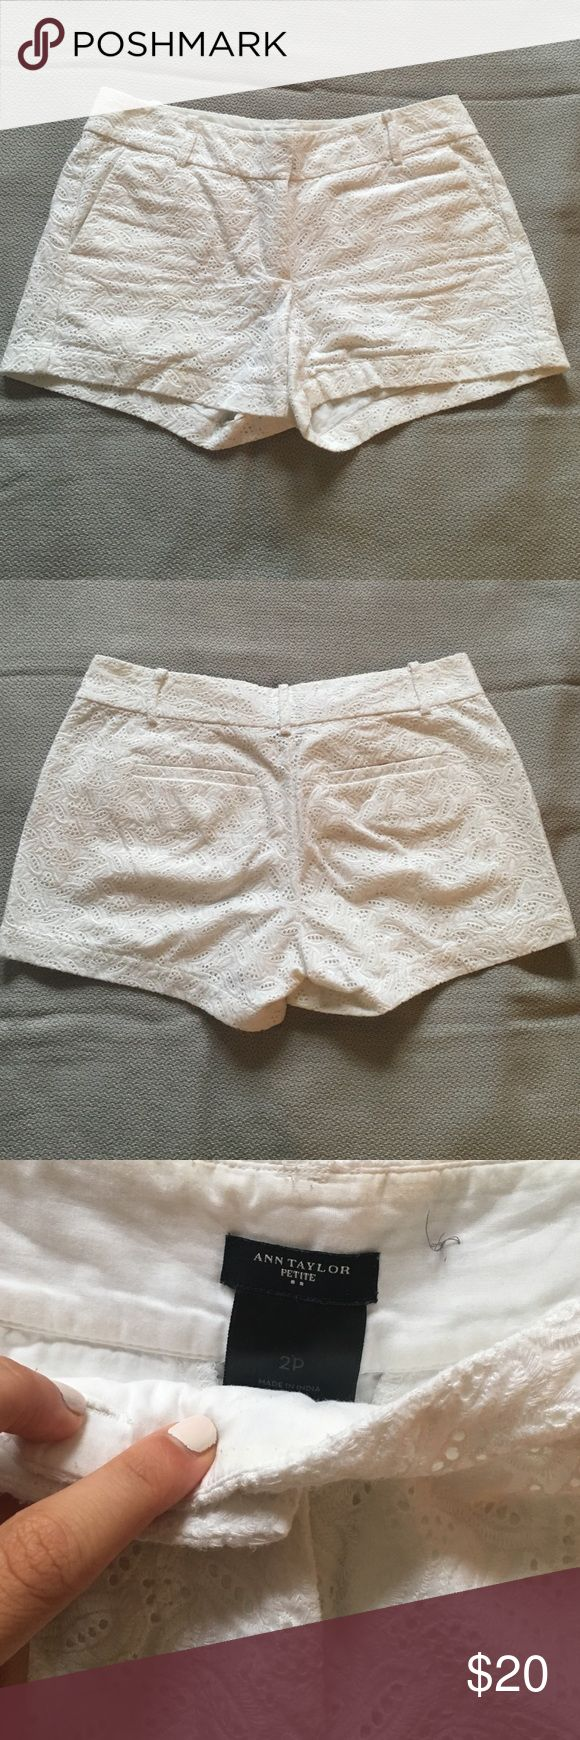 Ann Taylor Lace Shorts Super cute lace patterned shorts! They are in brand new condition, I bought them one size too big. Ann Taylor Shorts